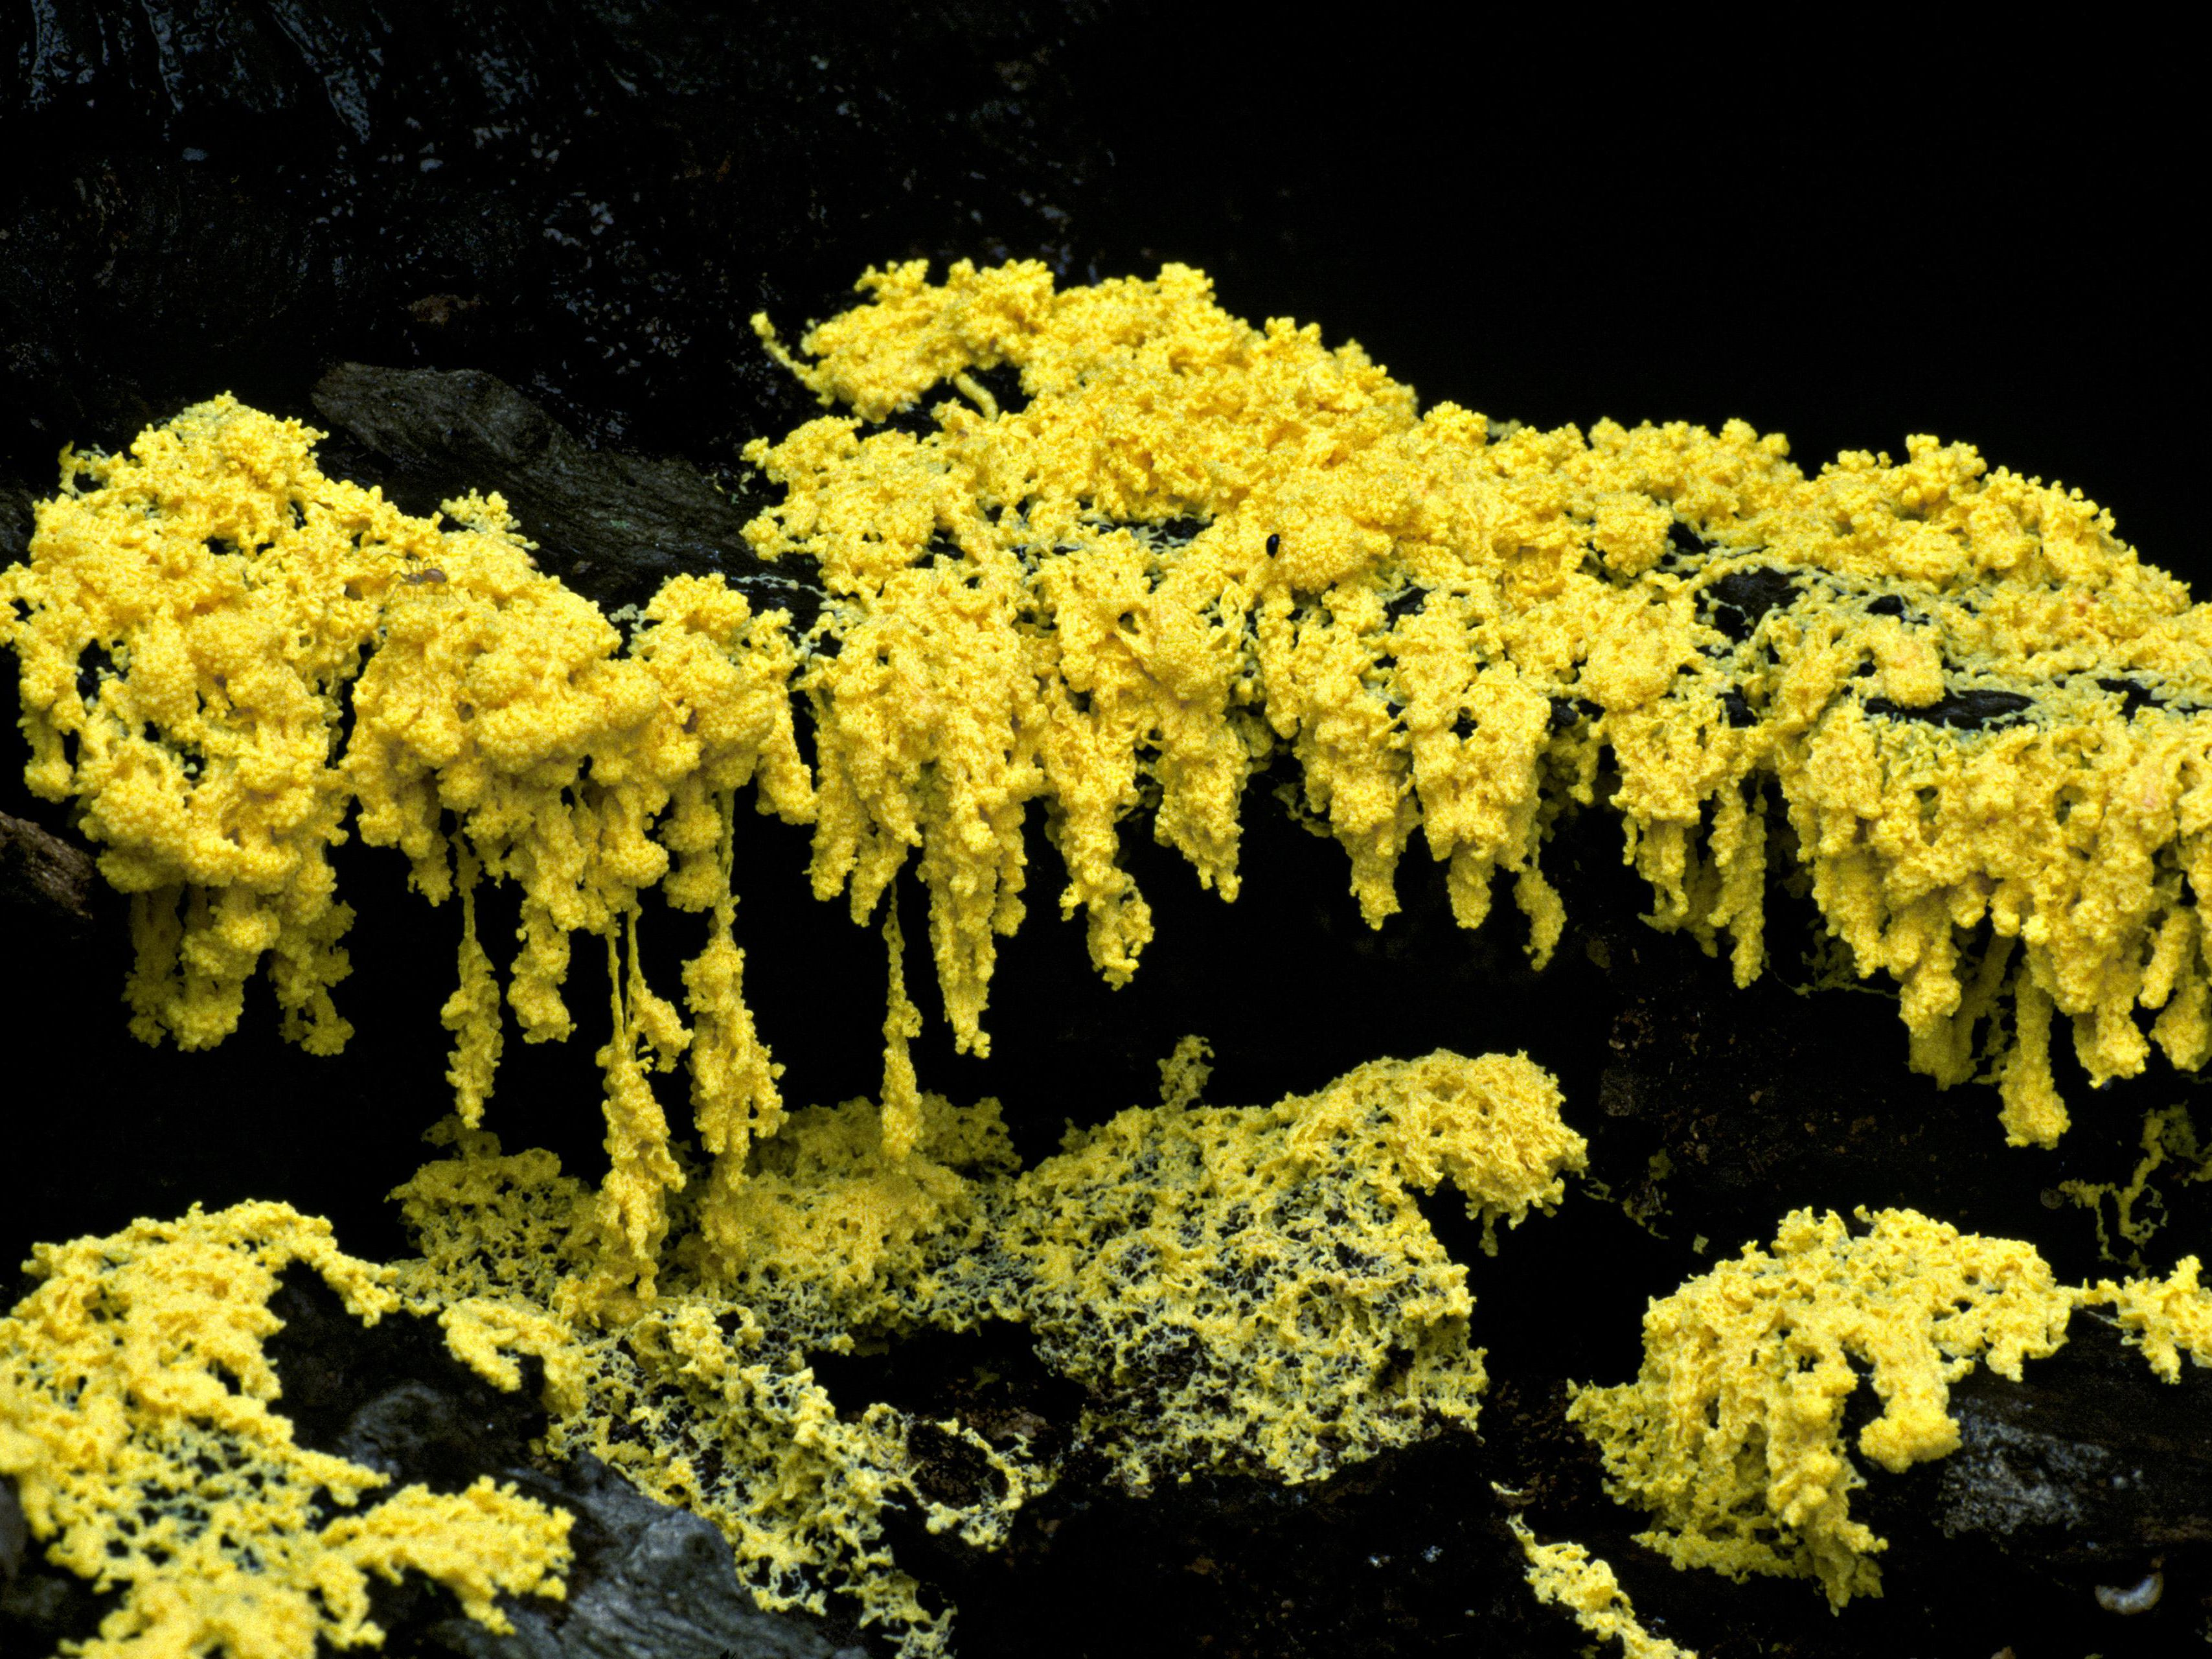 Dog Vomit Slime Mold Care And Growing Guide